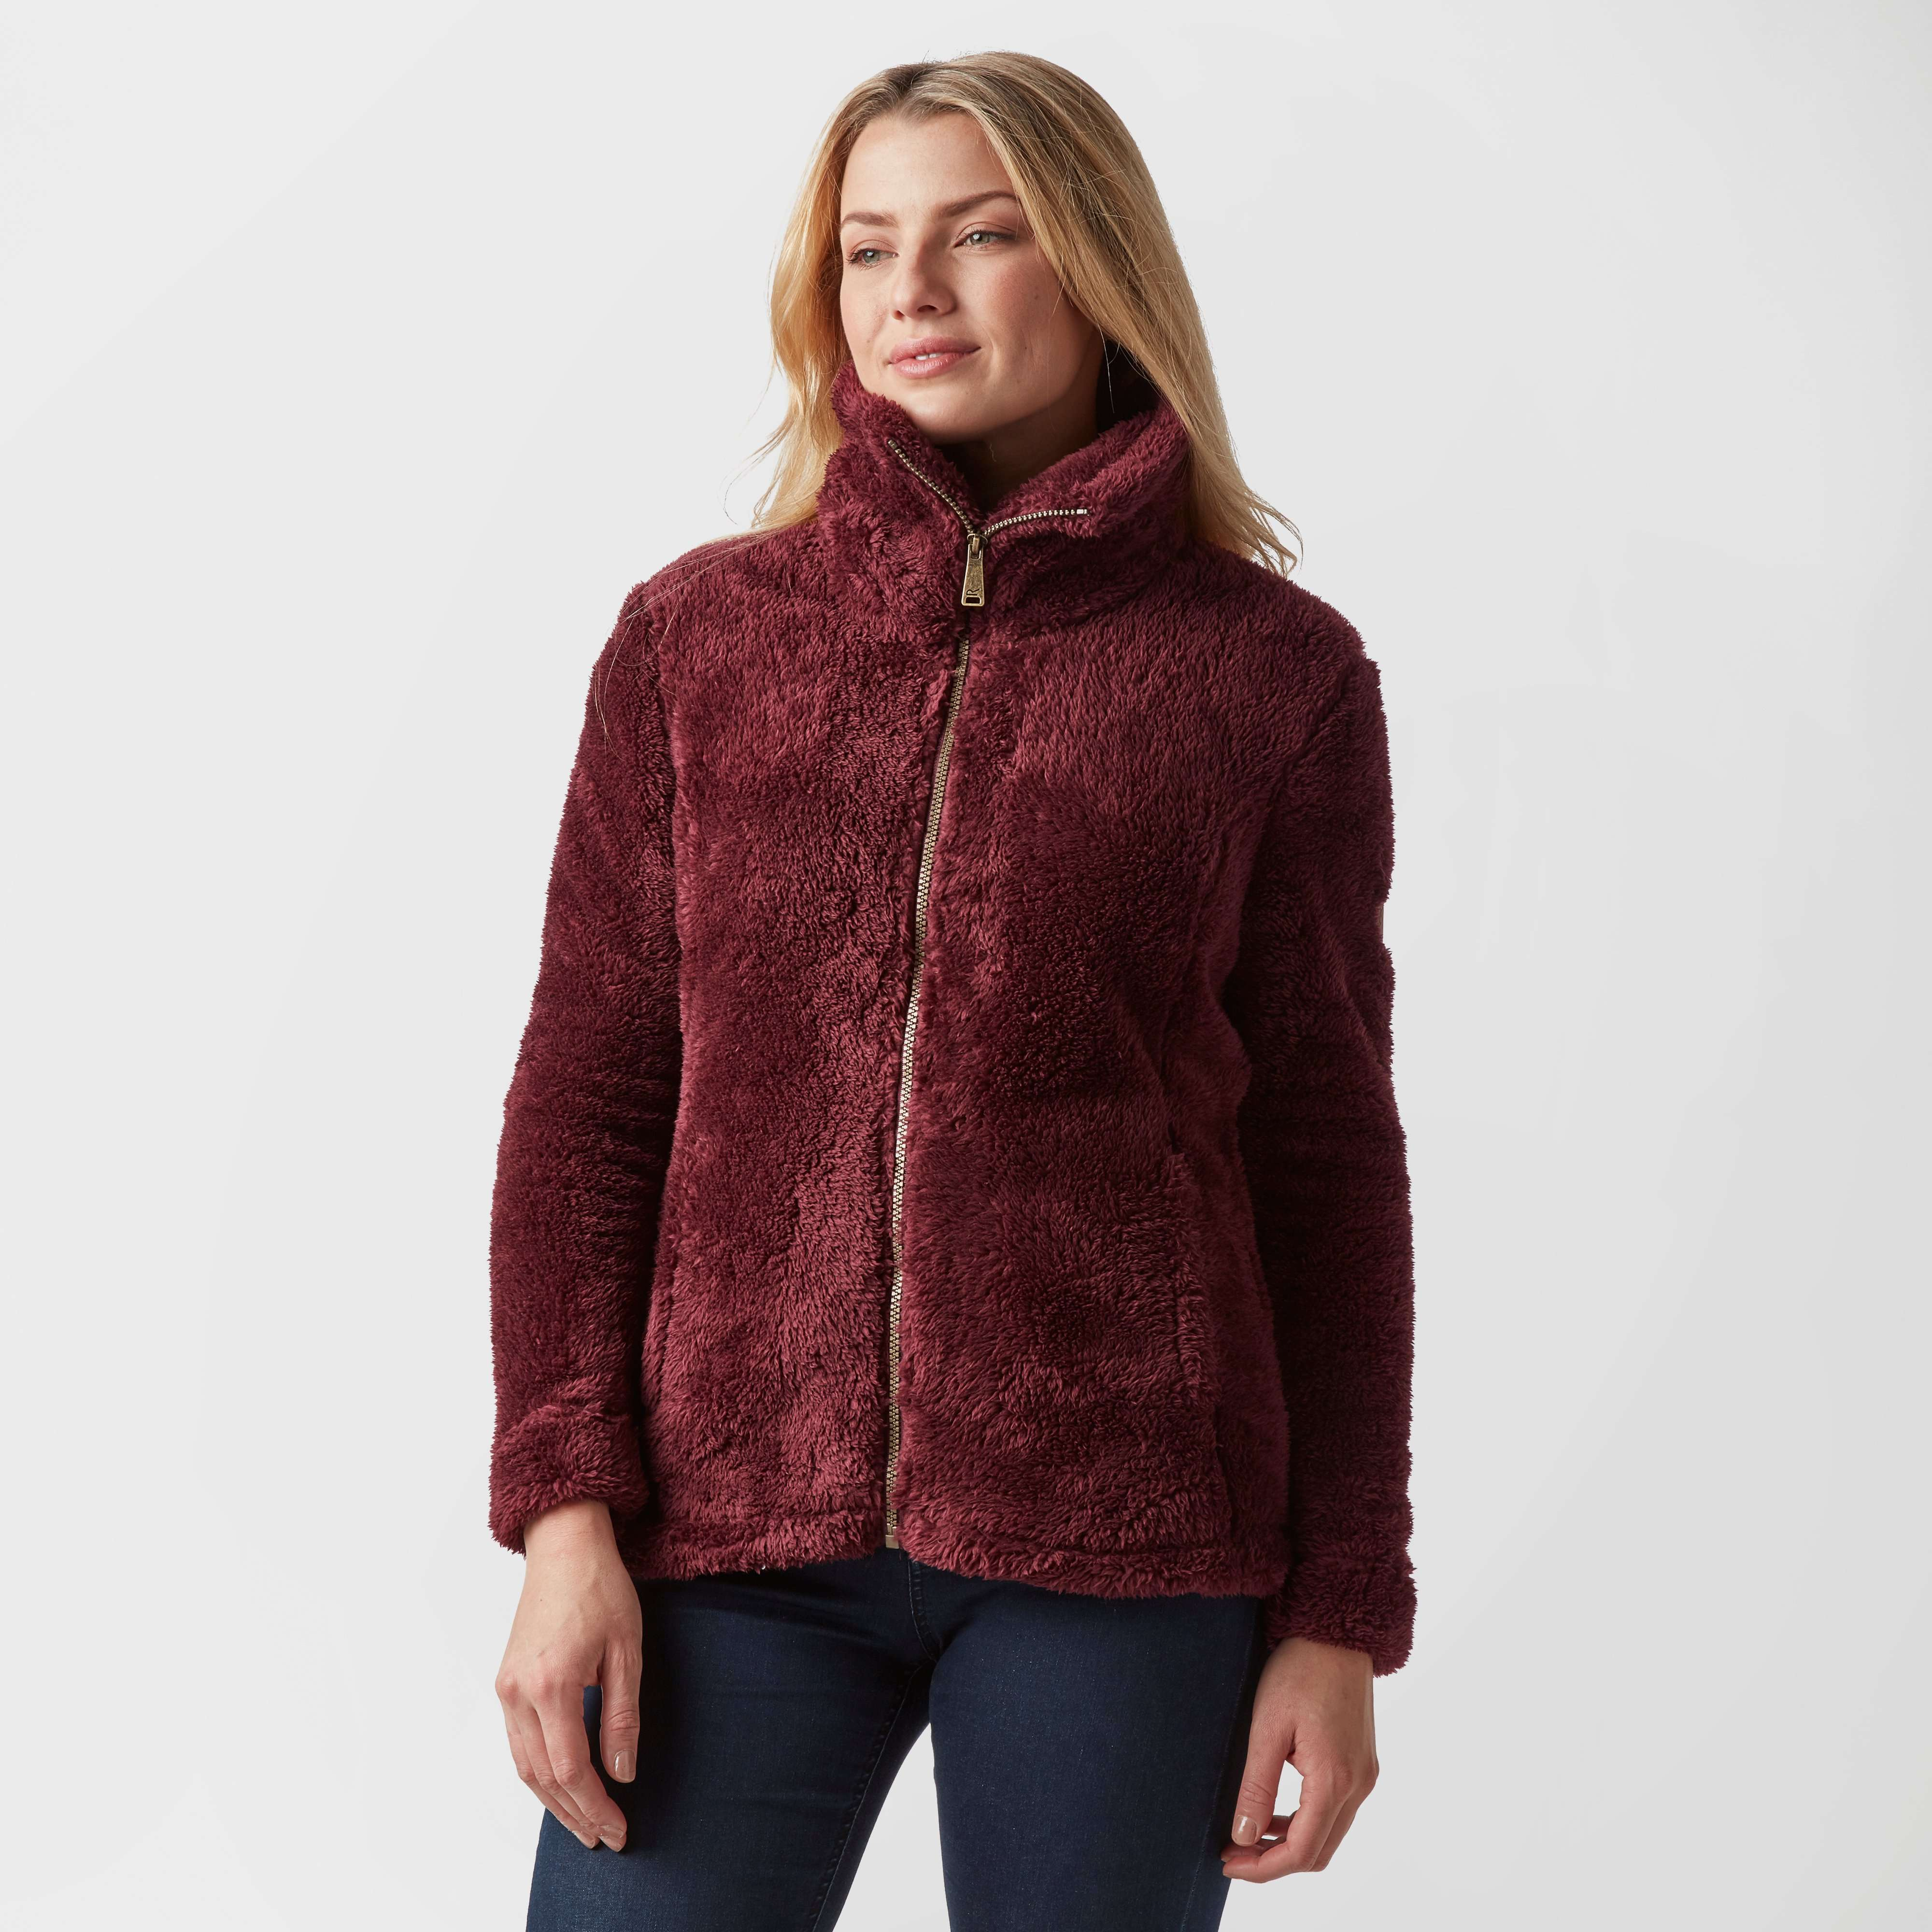 REGATTA Women's Halsey High-Collar Fleece